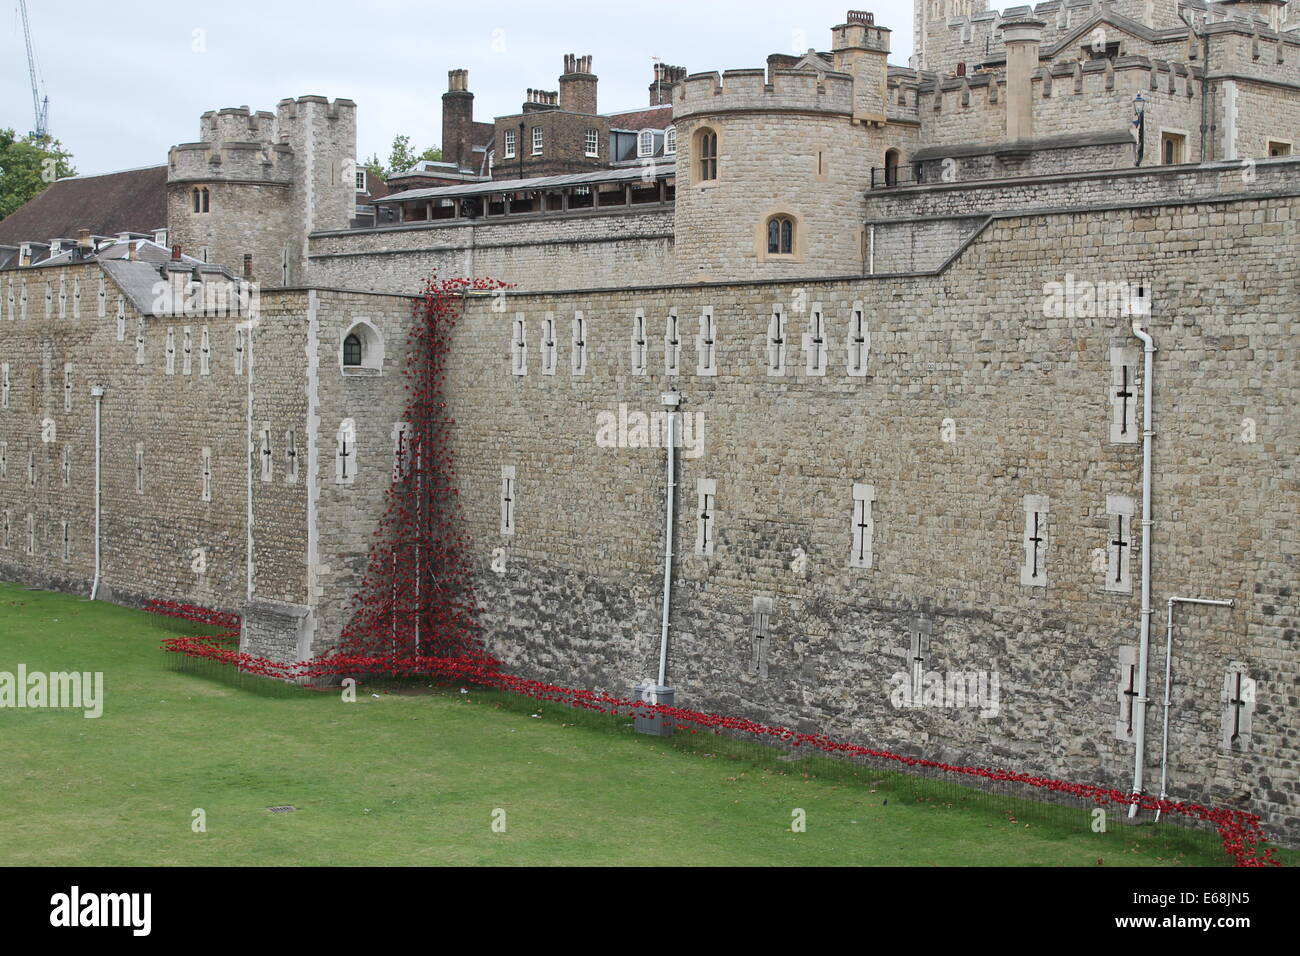 Tower of London - Blood Swept Lands and Seas of Red - Paul Cummins WW1 Centenary - Ceramic Poppies - Stock Image